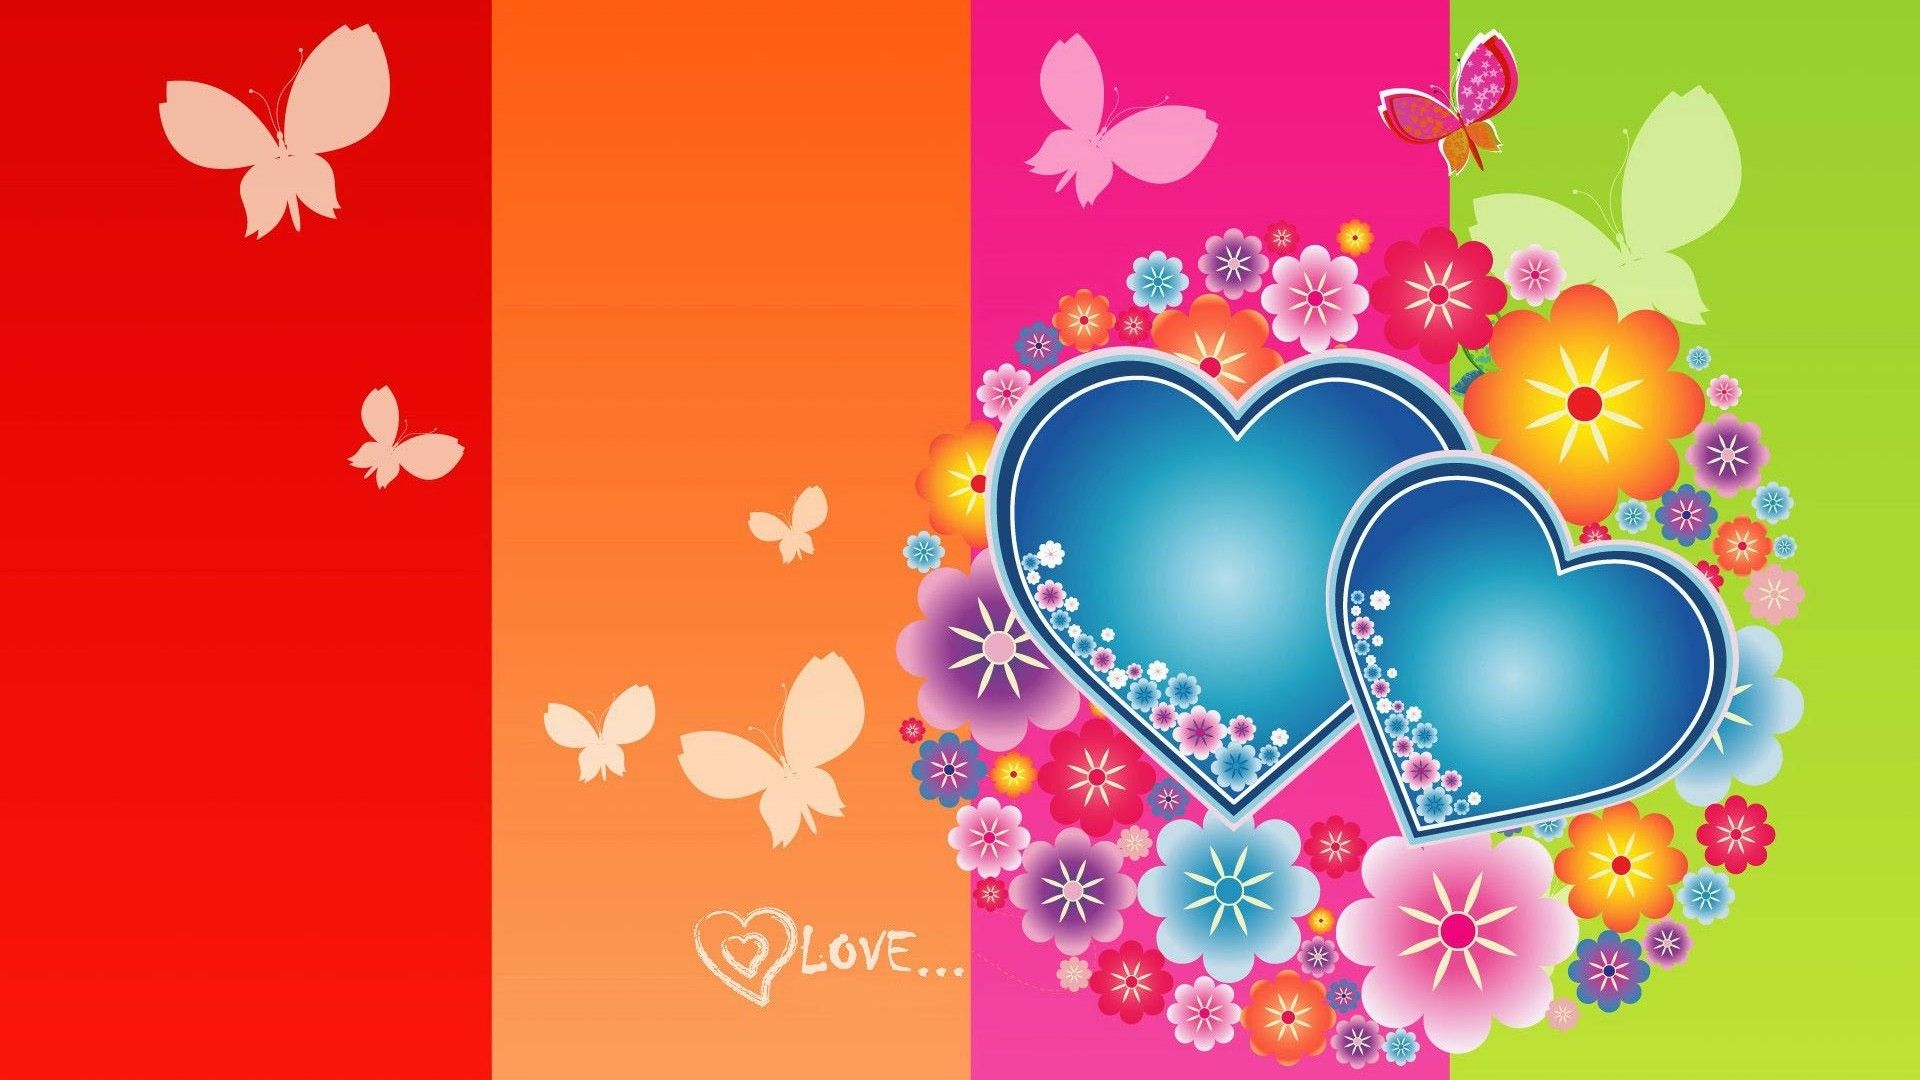 cute valentines day 1920x1080 hd desktop wallpaper | cute